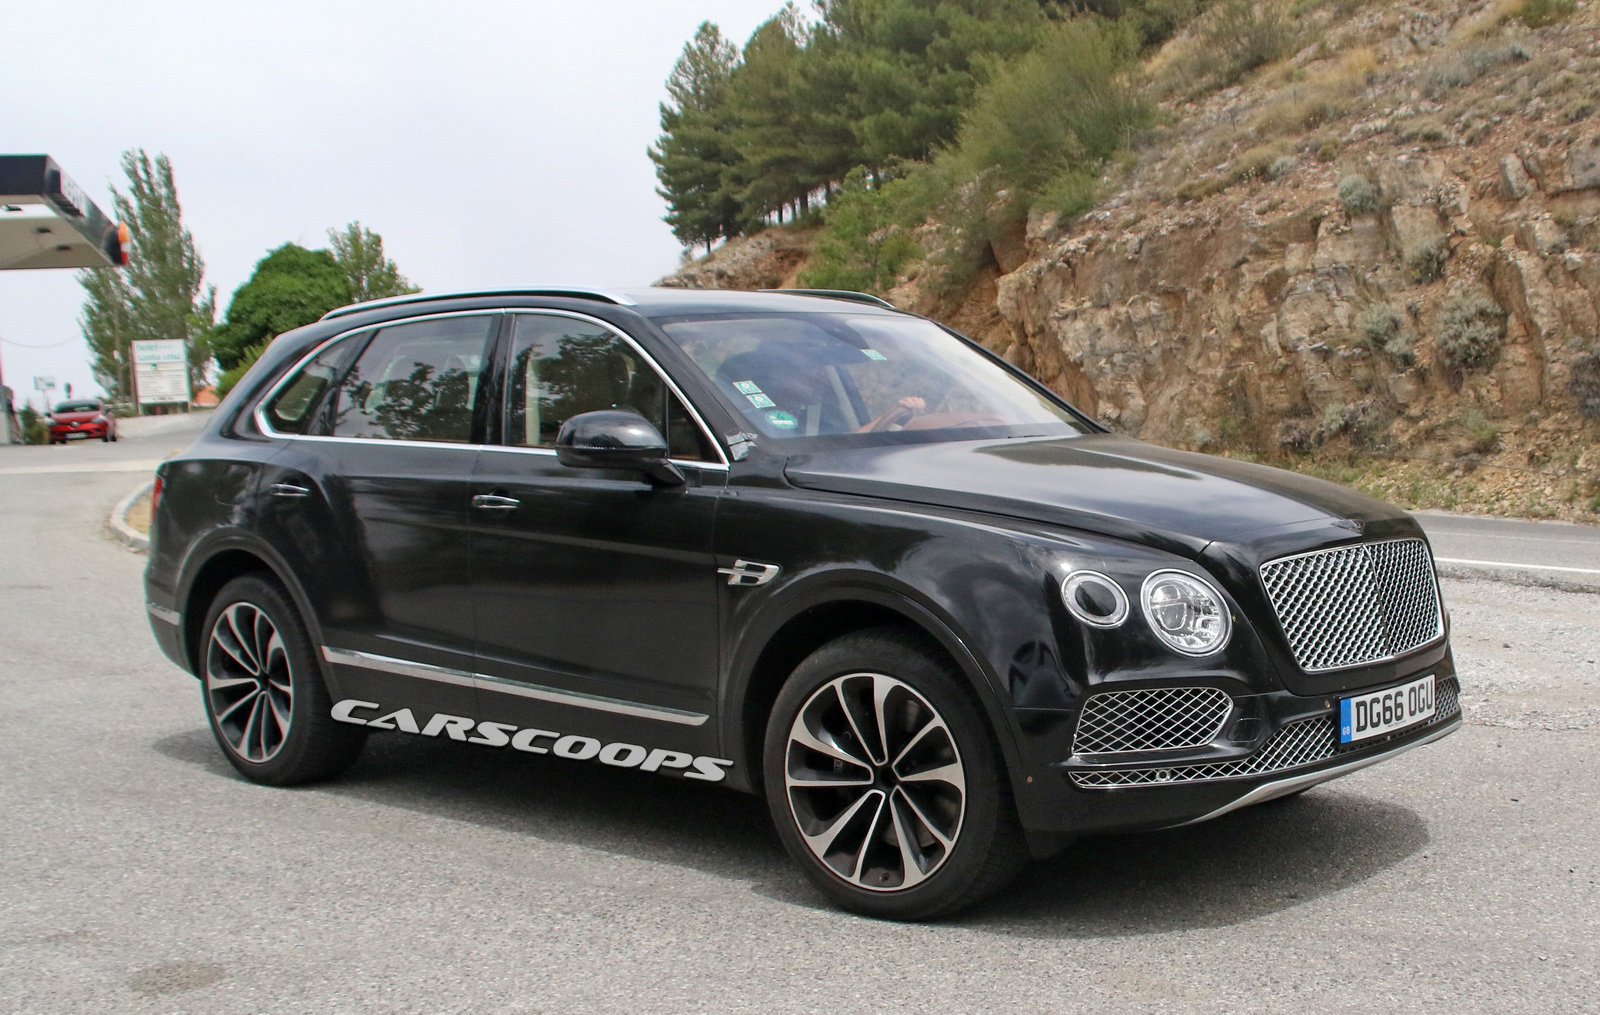 Spied: Plug-In Hybrid Bentley Bentayga Is Another First